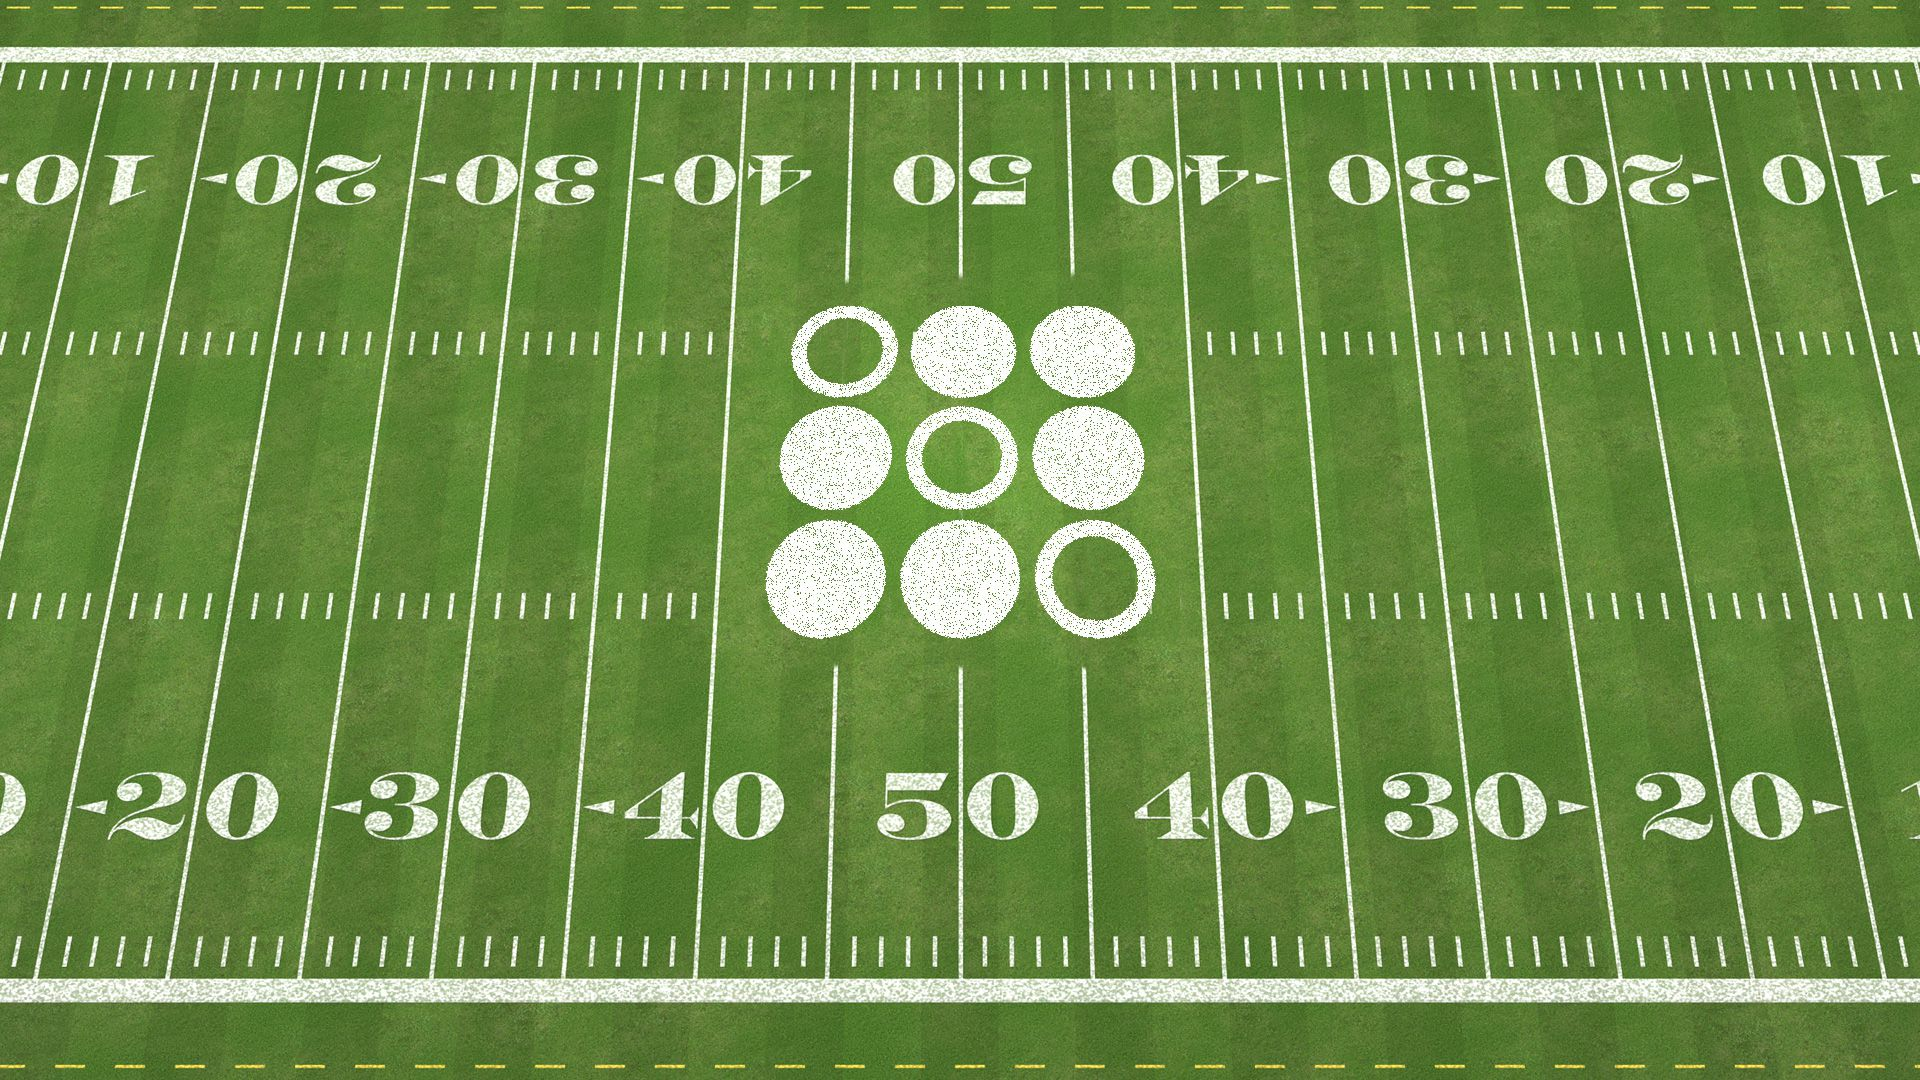 A SoFi logo on a football field.